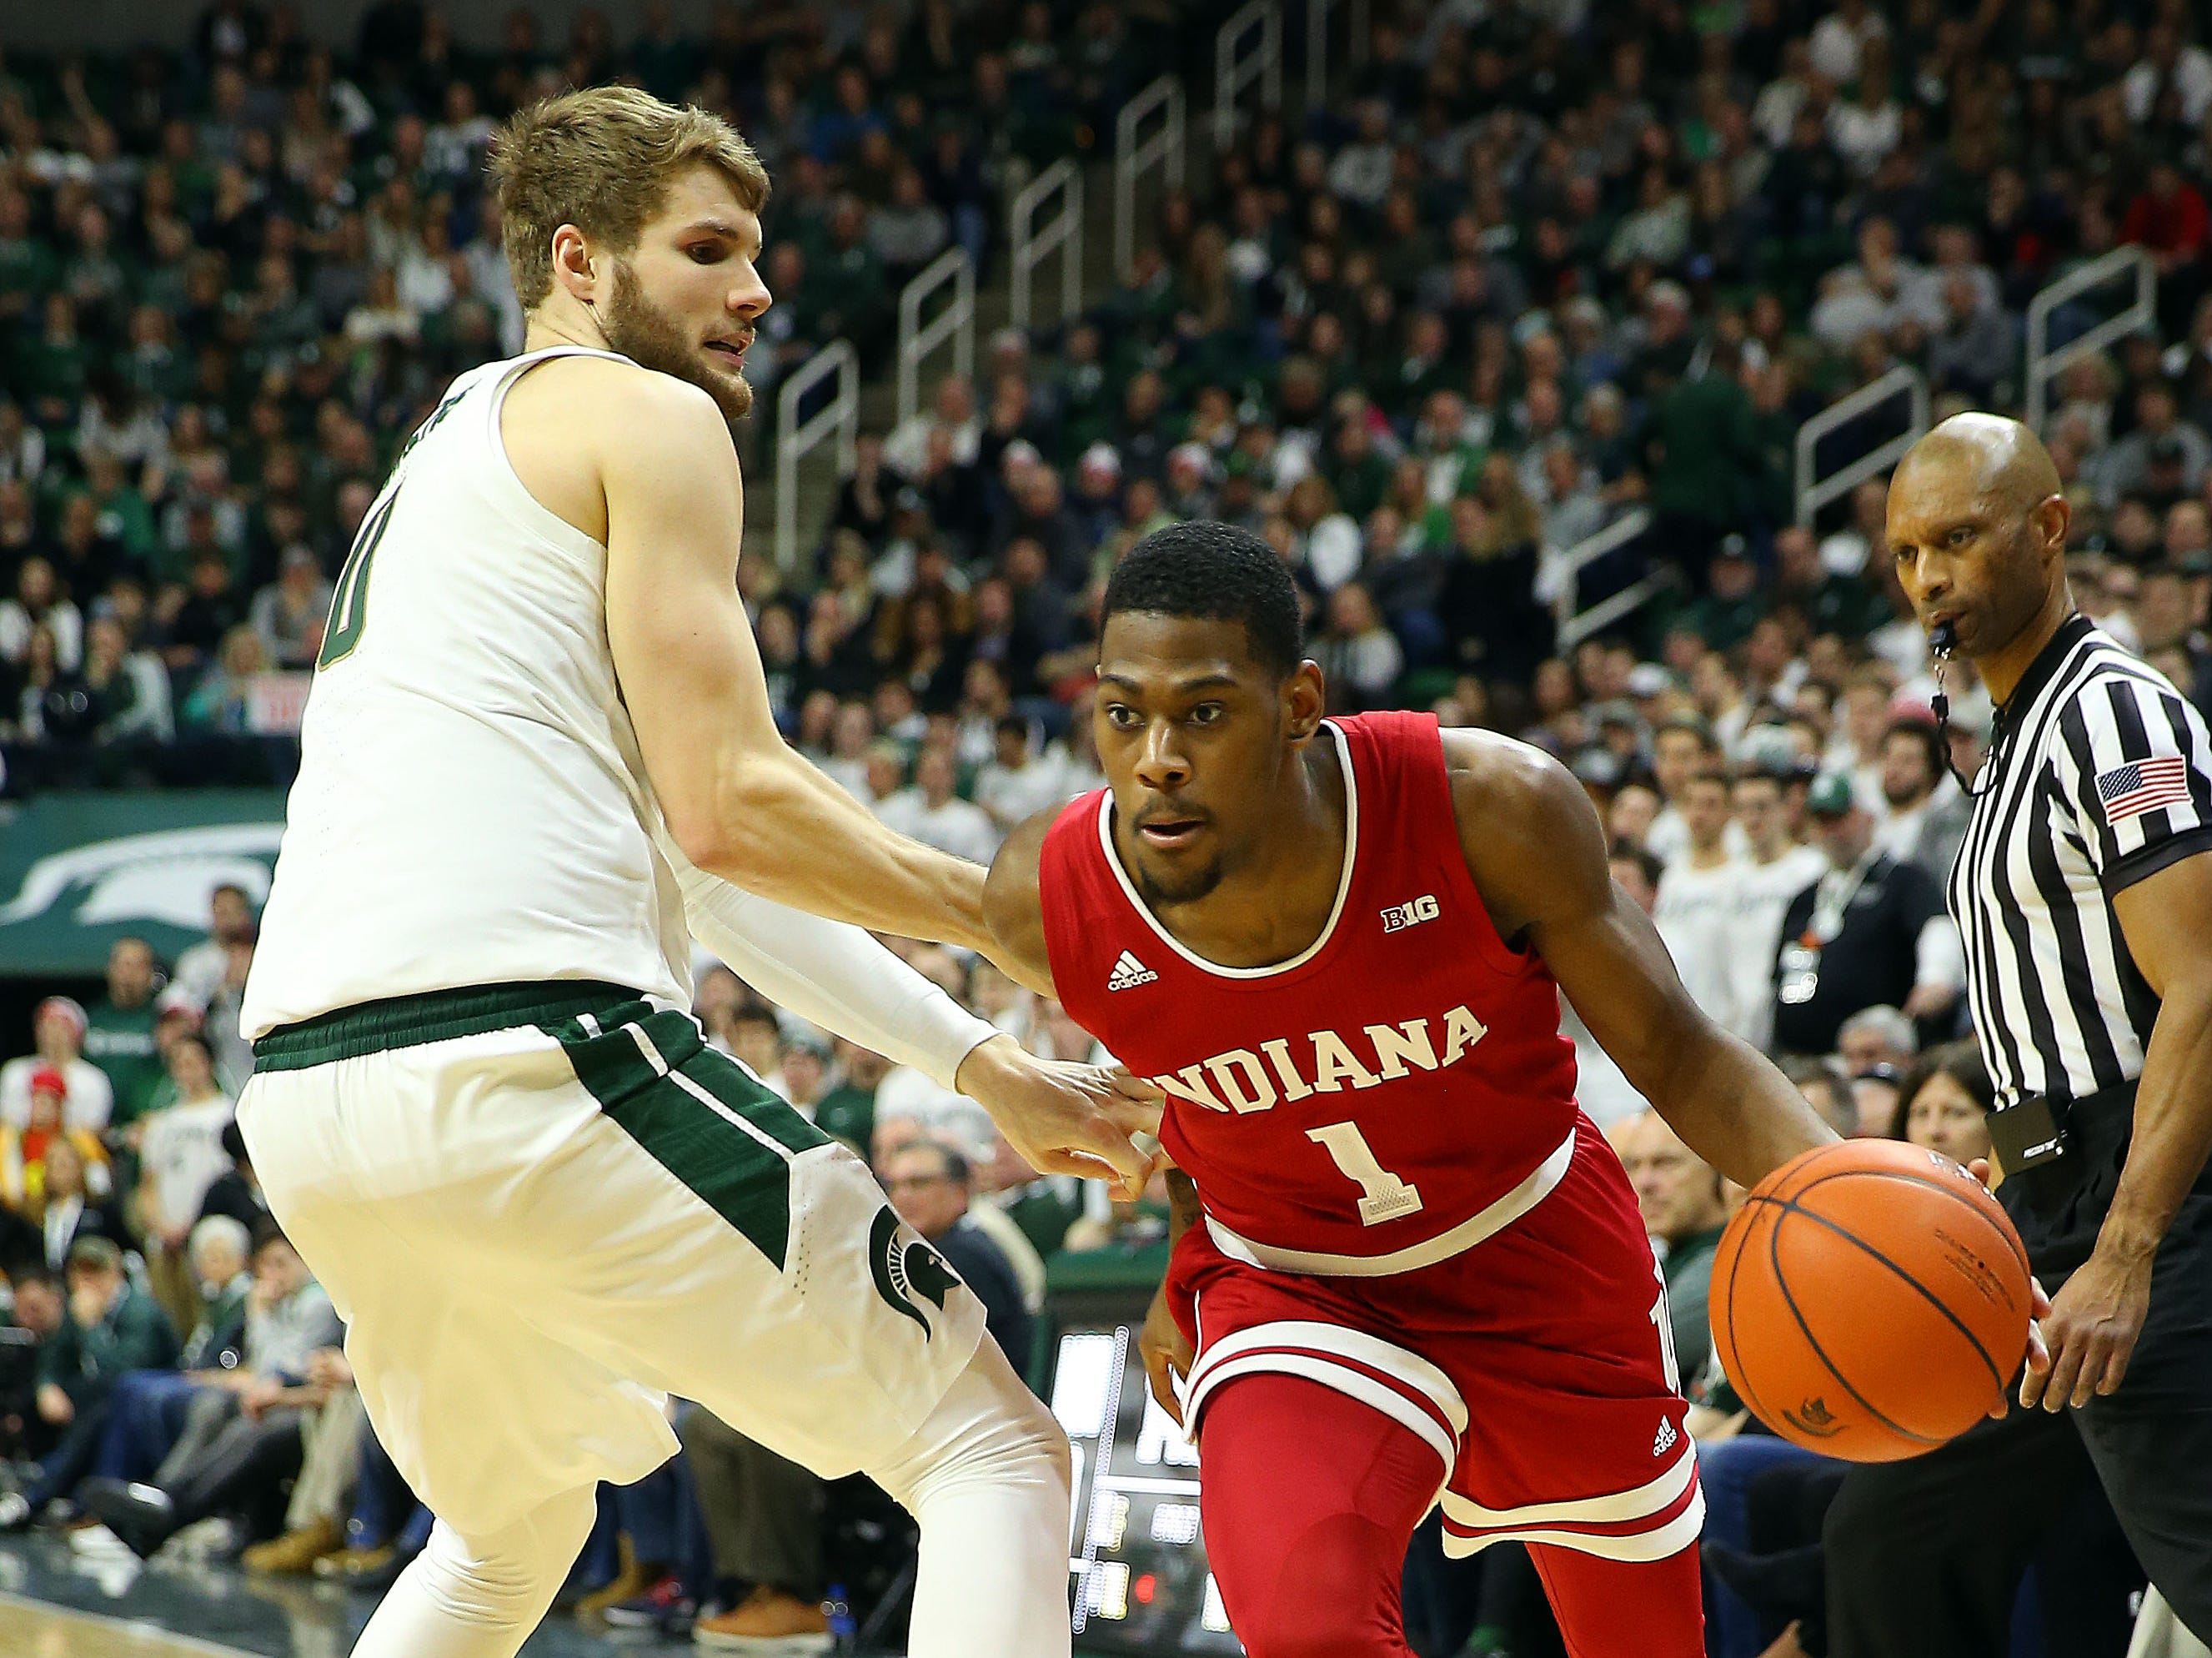 Feb 2, 2019; East Lansing, MI, USA; Indiana Hoosiers guard Aljami Durham (1) moves to the basket against Michigan State Spartans forward Kyle Ahrens (0) during the first half  at the Breslin Center. Mandatory Credit: Mike Carter-USA TODAY Sports